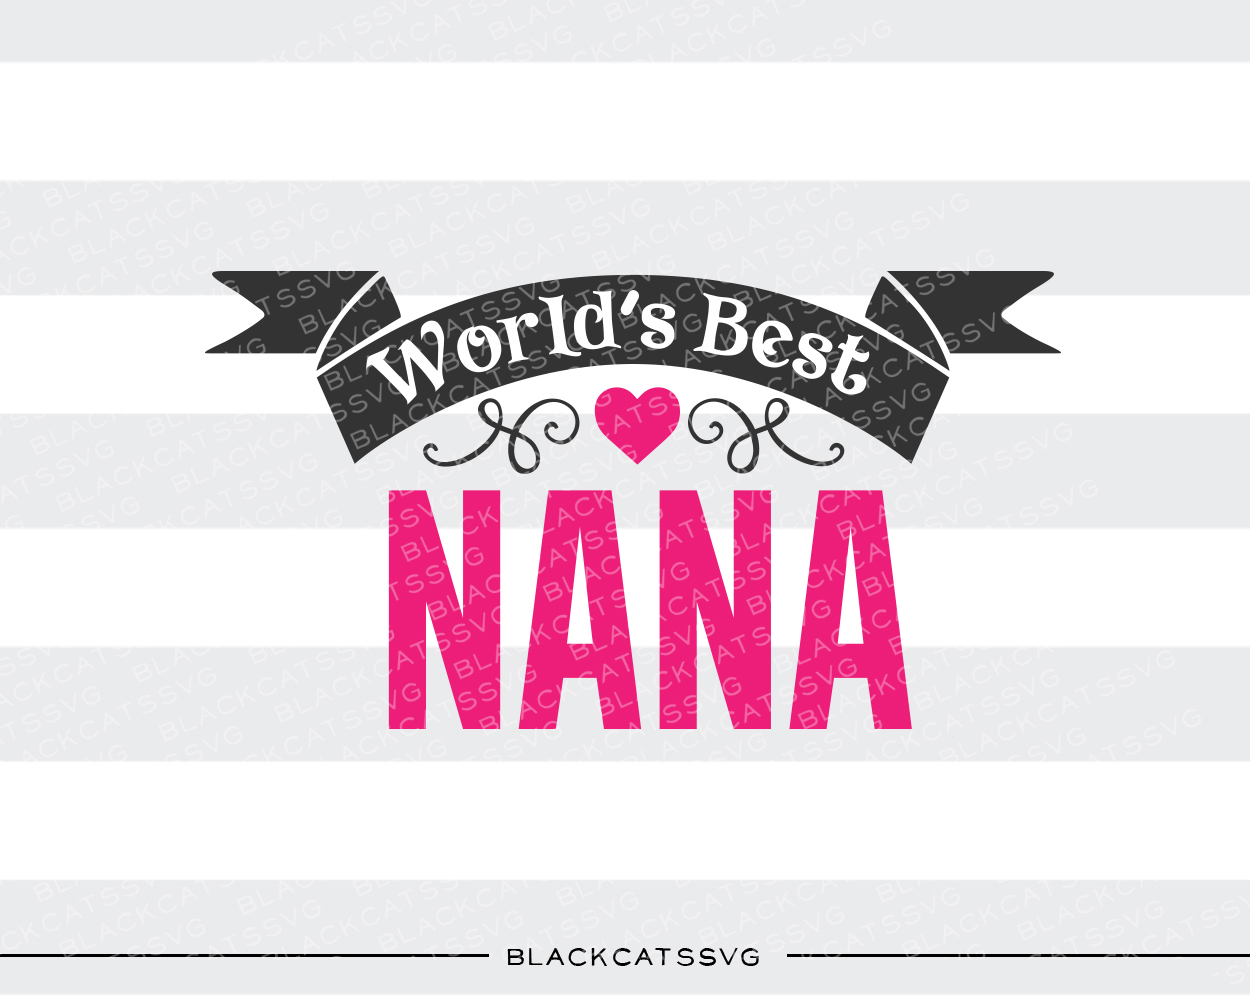 World's Best Nana Kids Craft Cut File By BlackCatsSVG